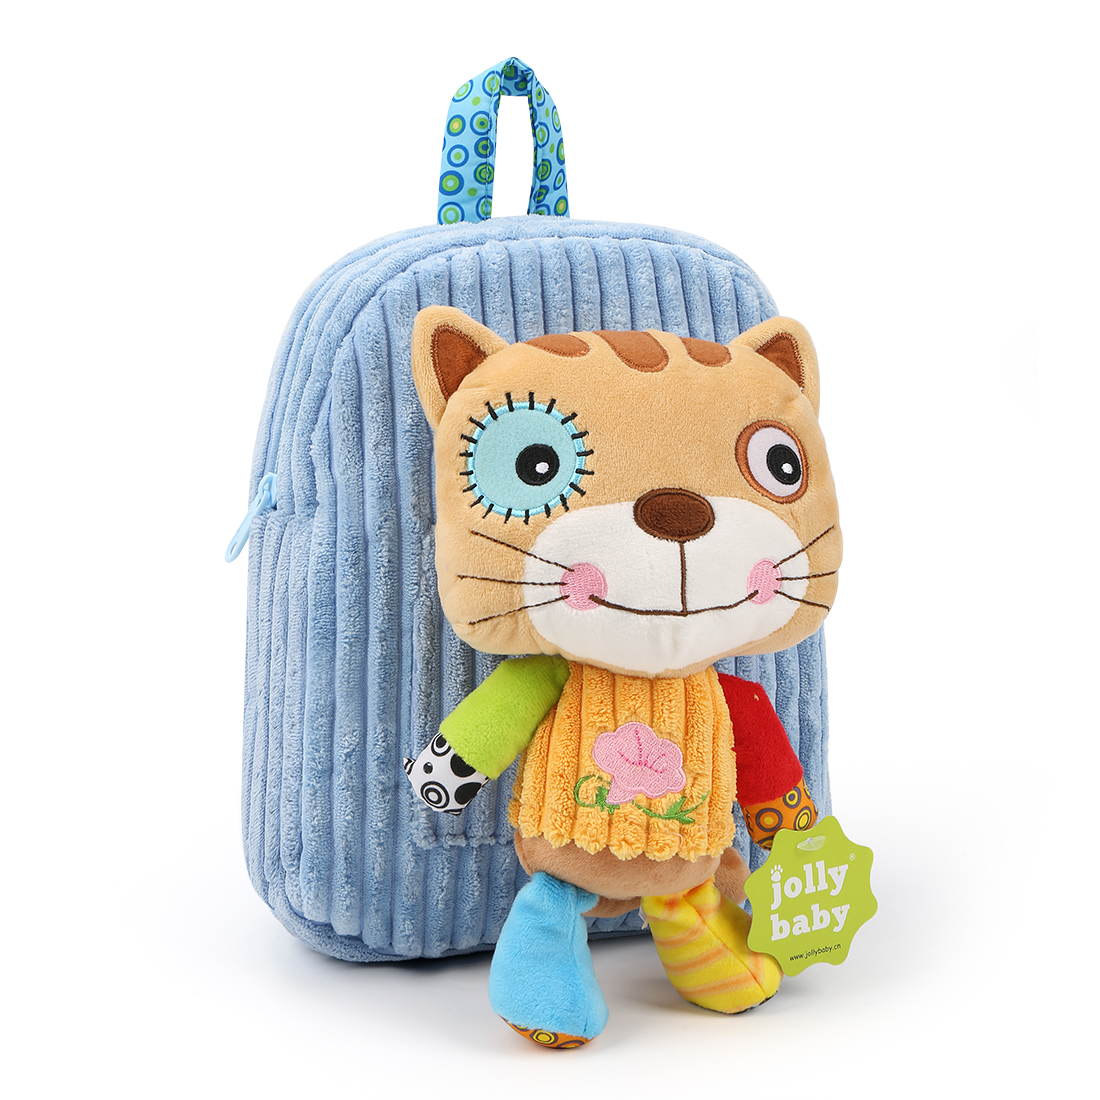 Cartoon Animal Style Toy Plush School Bag Plush Backpack Shoulder Baby Bagfor Kids Children 2-5 Years Old(Blue)Blue